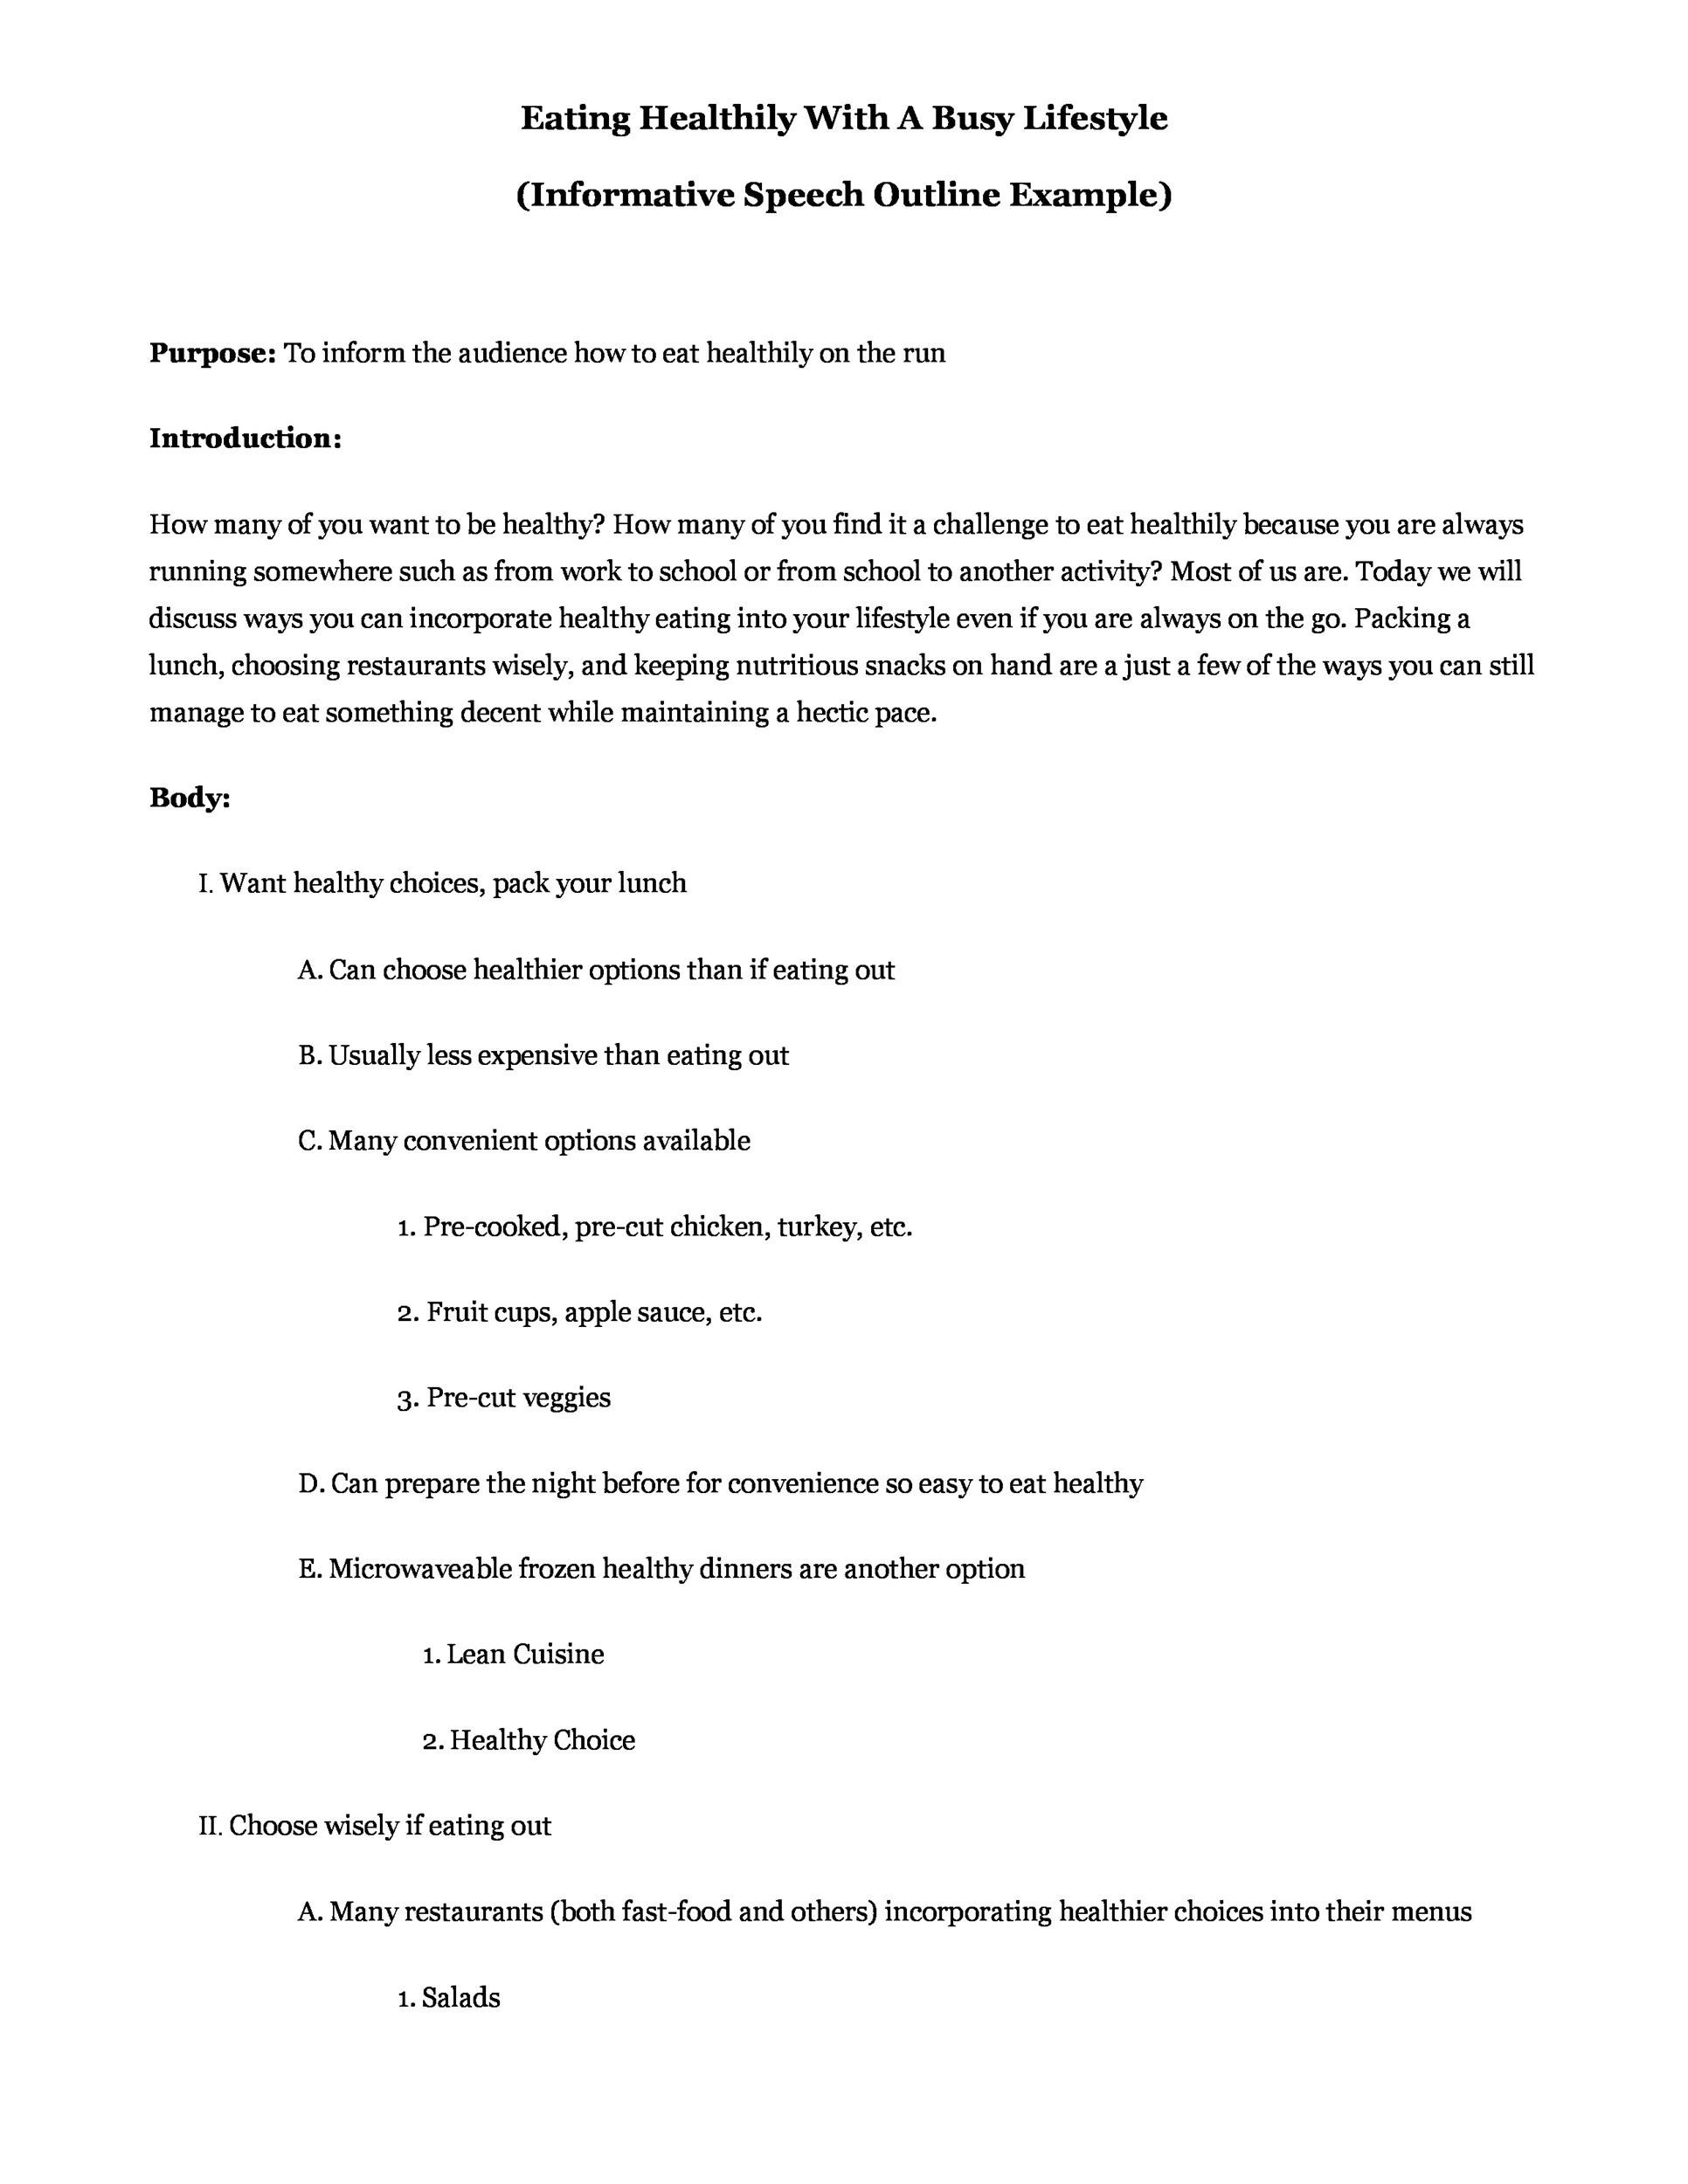 format for writing an informative speech Informative speaking i n this guide, you can learn about the purposes and types of informative speeches, about writing and delivering informative speeches, and about the parts of.